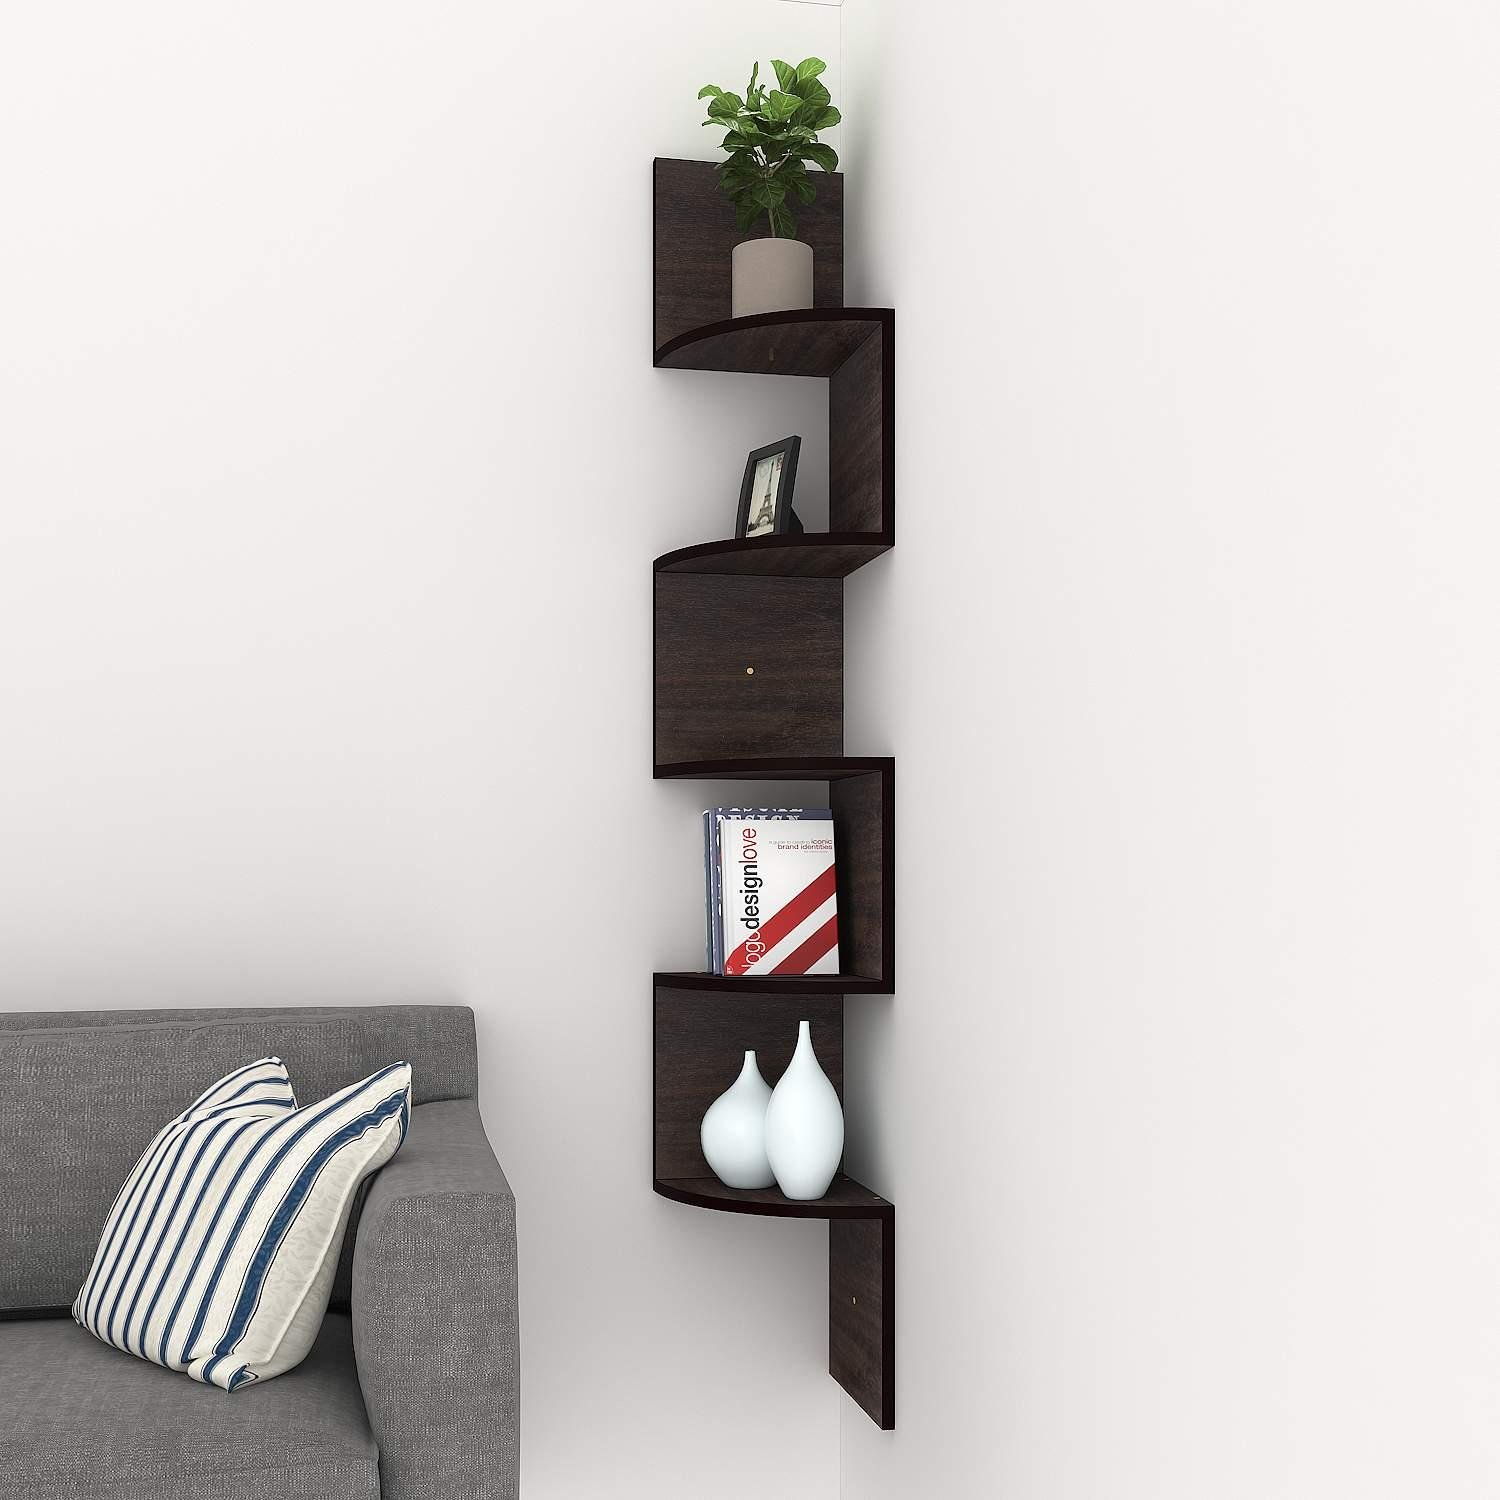 corner floating shelves modern tier uzgtyrgl inch shelf mount home decor display kitchen barnwood fireplace pine shelving unit computer desk with island table wooden bathroom sink